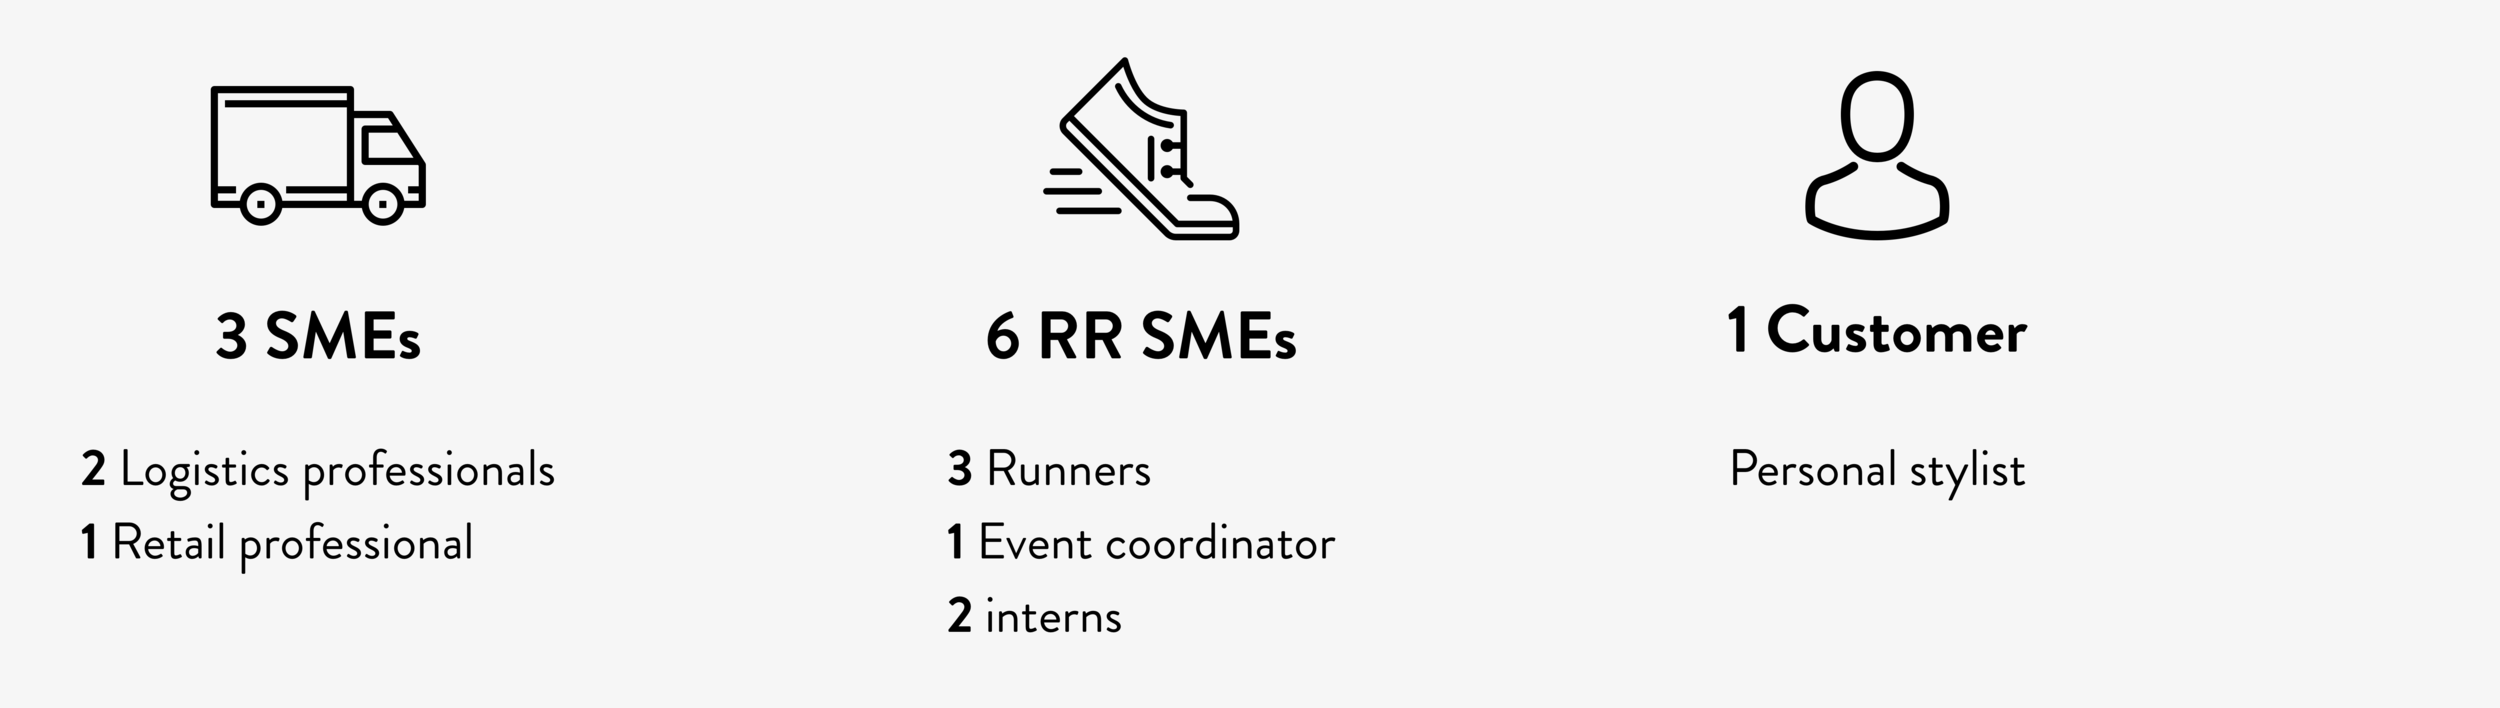 RR provided us with interview participants to find ways to improve the runner's process. Our objectives were to gain insight from the logistics industry, understand the customer service industry, and empathize with inexperienced runners.